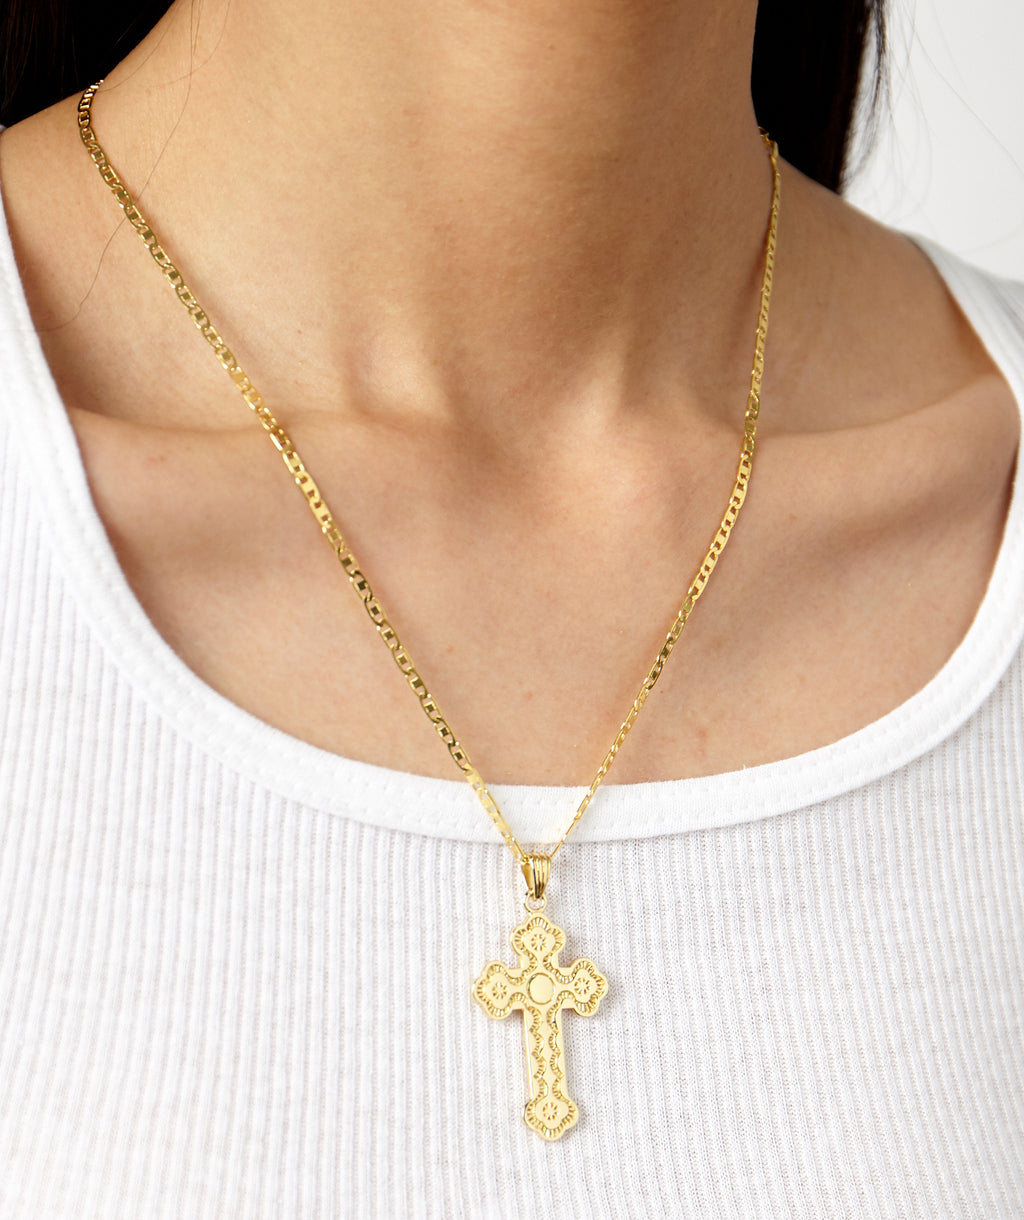 ST. MARK'S CROSS NECKLACE